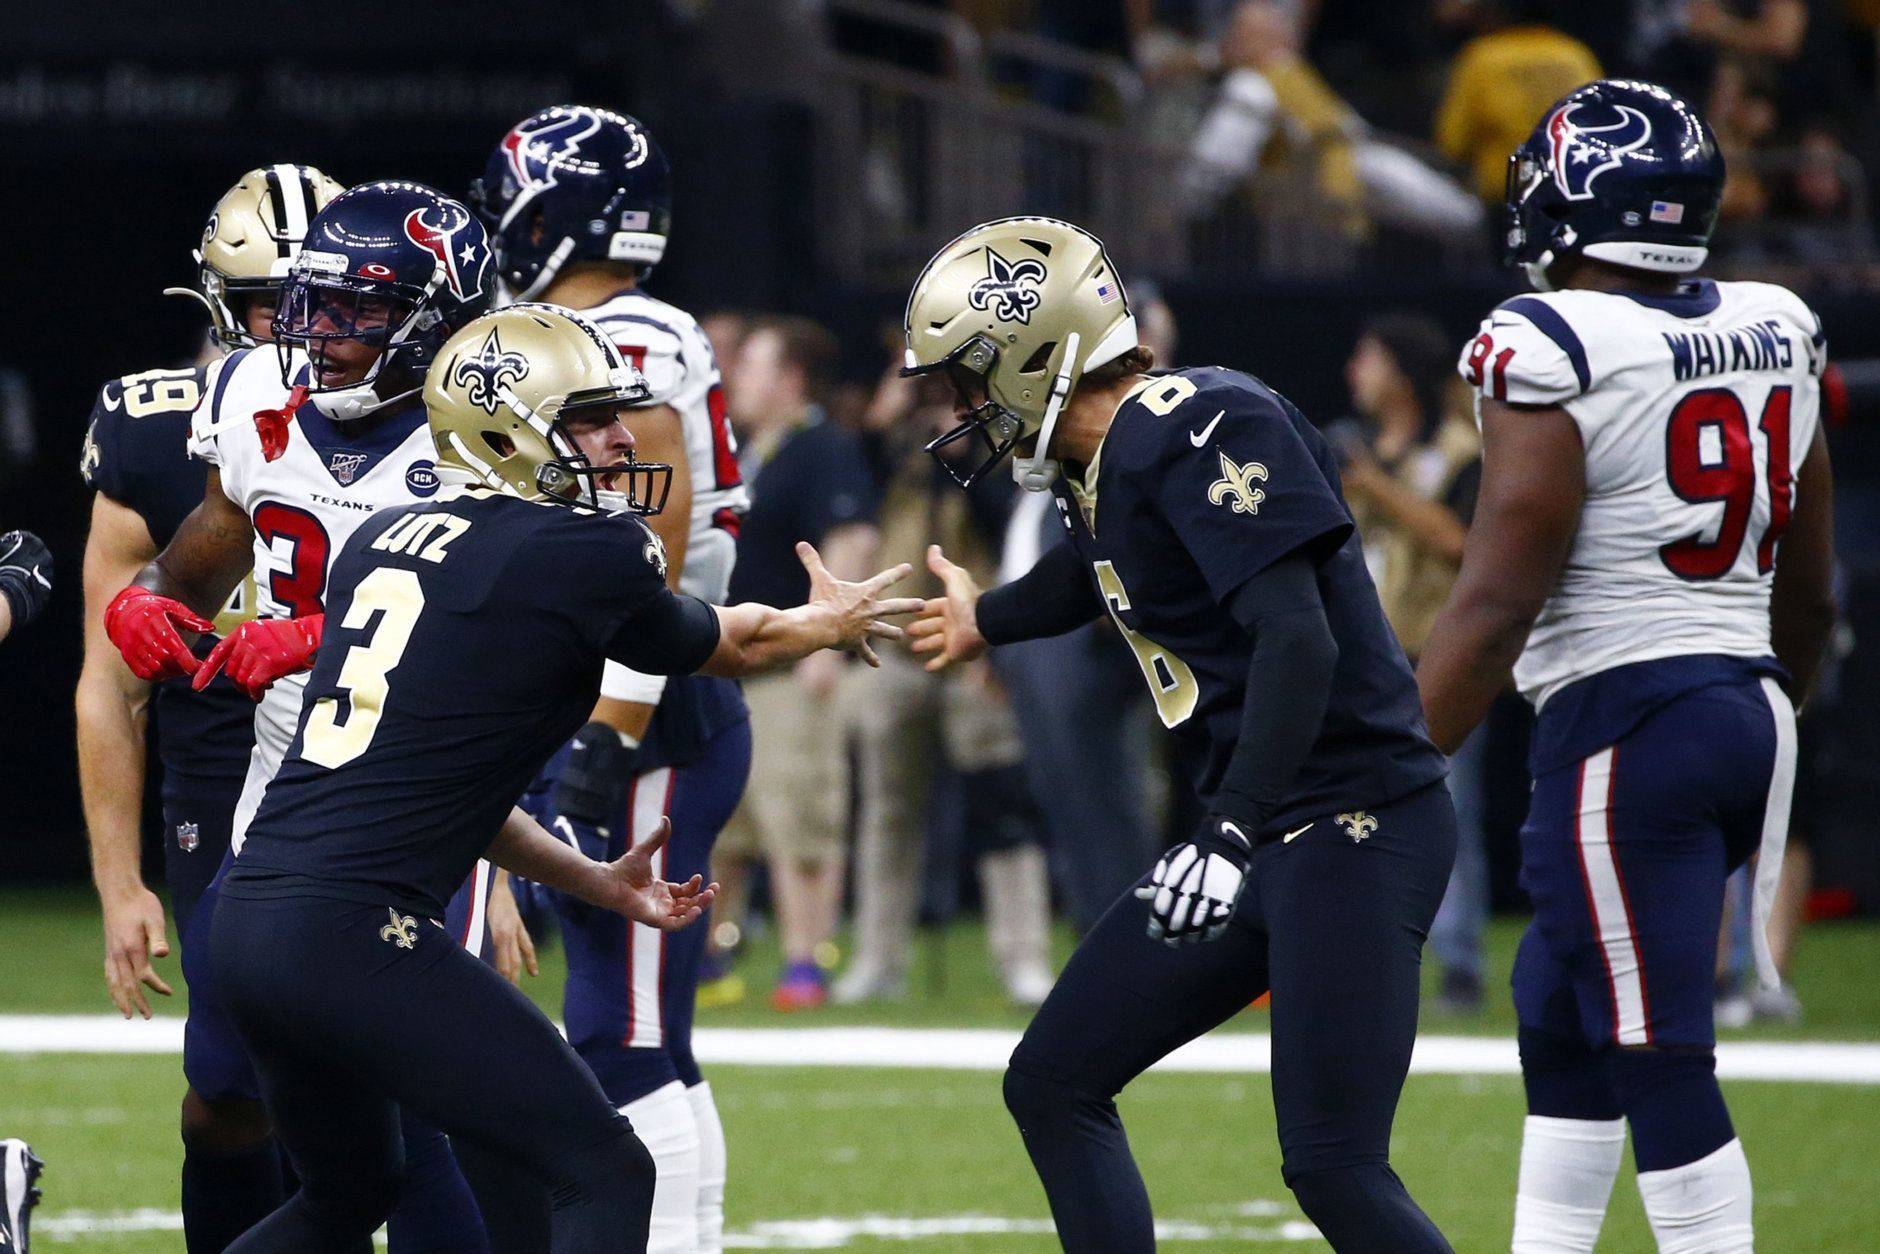 <p><strong><em>Texans 28</em></strong><br /> <strong><em>Saints 30</em></strong></p> <p>The back and forth between old school Drew Brees and new school Deshaun Watson. Former Saint Kenny Stills scoring the game tying touchdown in New Orleans and a roughing the kicker penalty that allowed redemption on a missed game-winning extra point. Will Lutz with a career-long 58-yard field goal to give the Saints their first season-opening win since 2013. Can we vote for this to be the Super Bowl?</p>